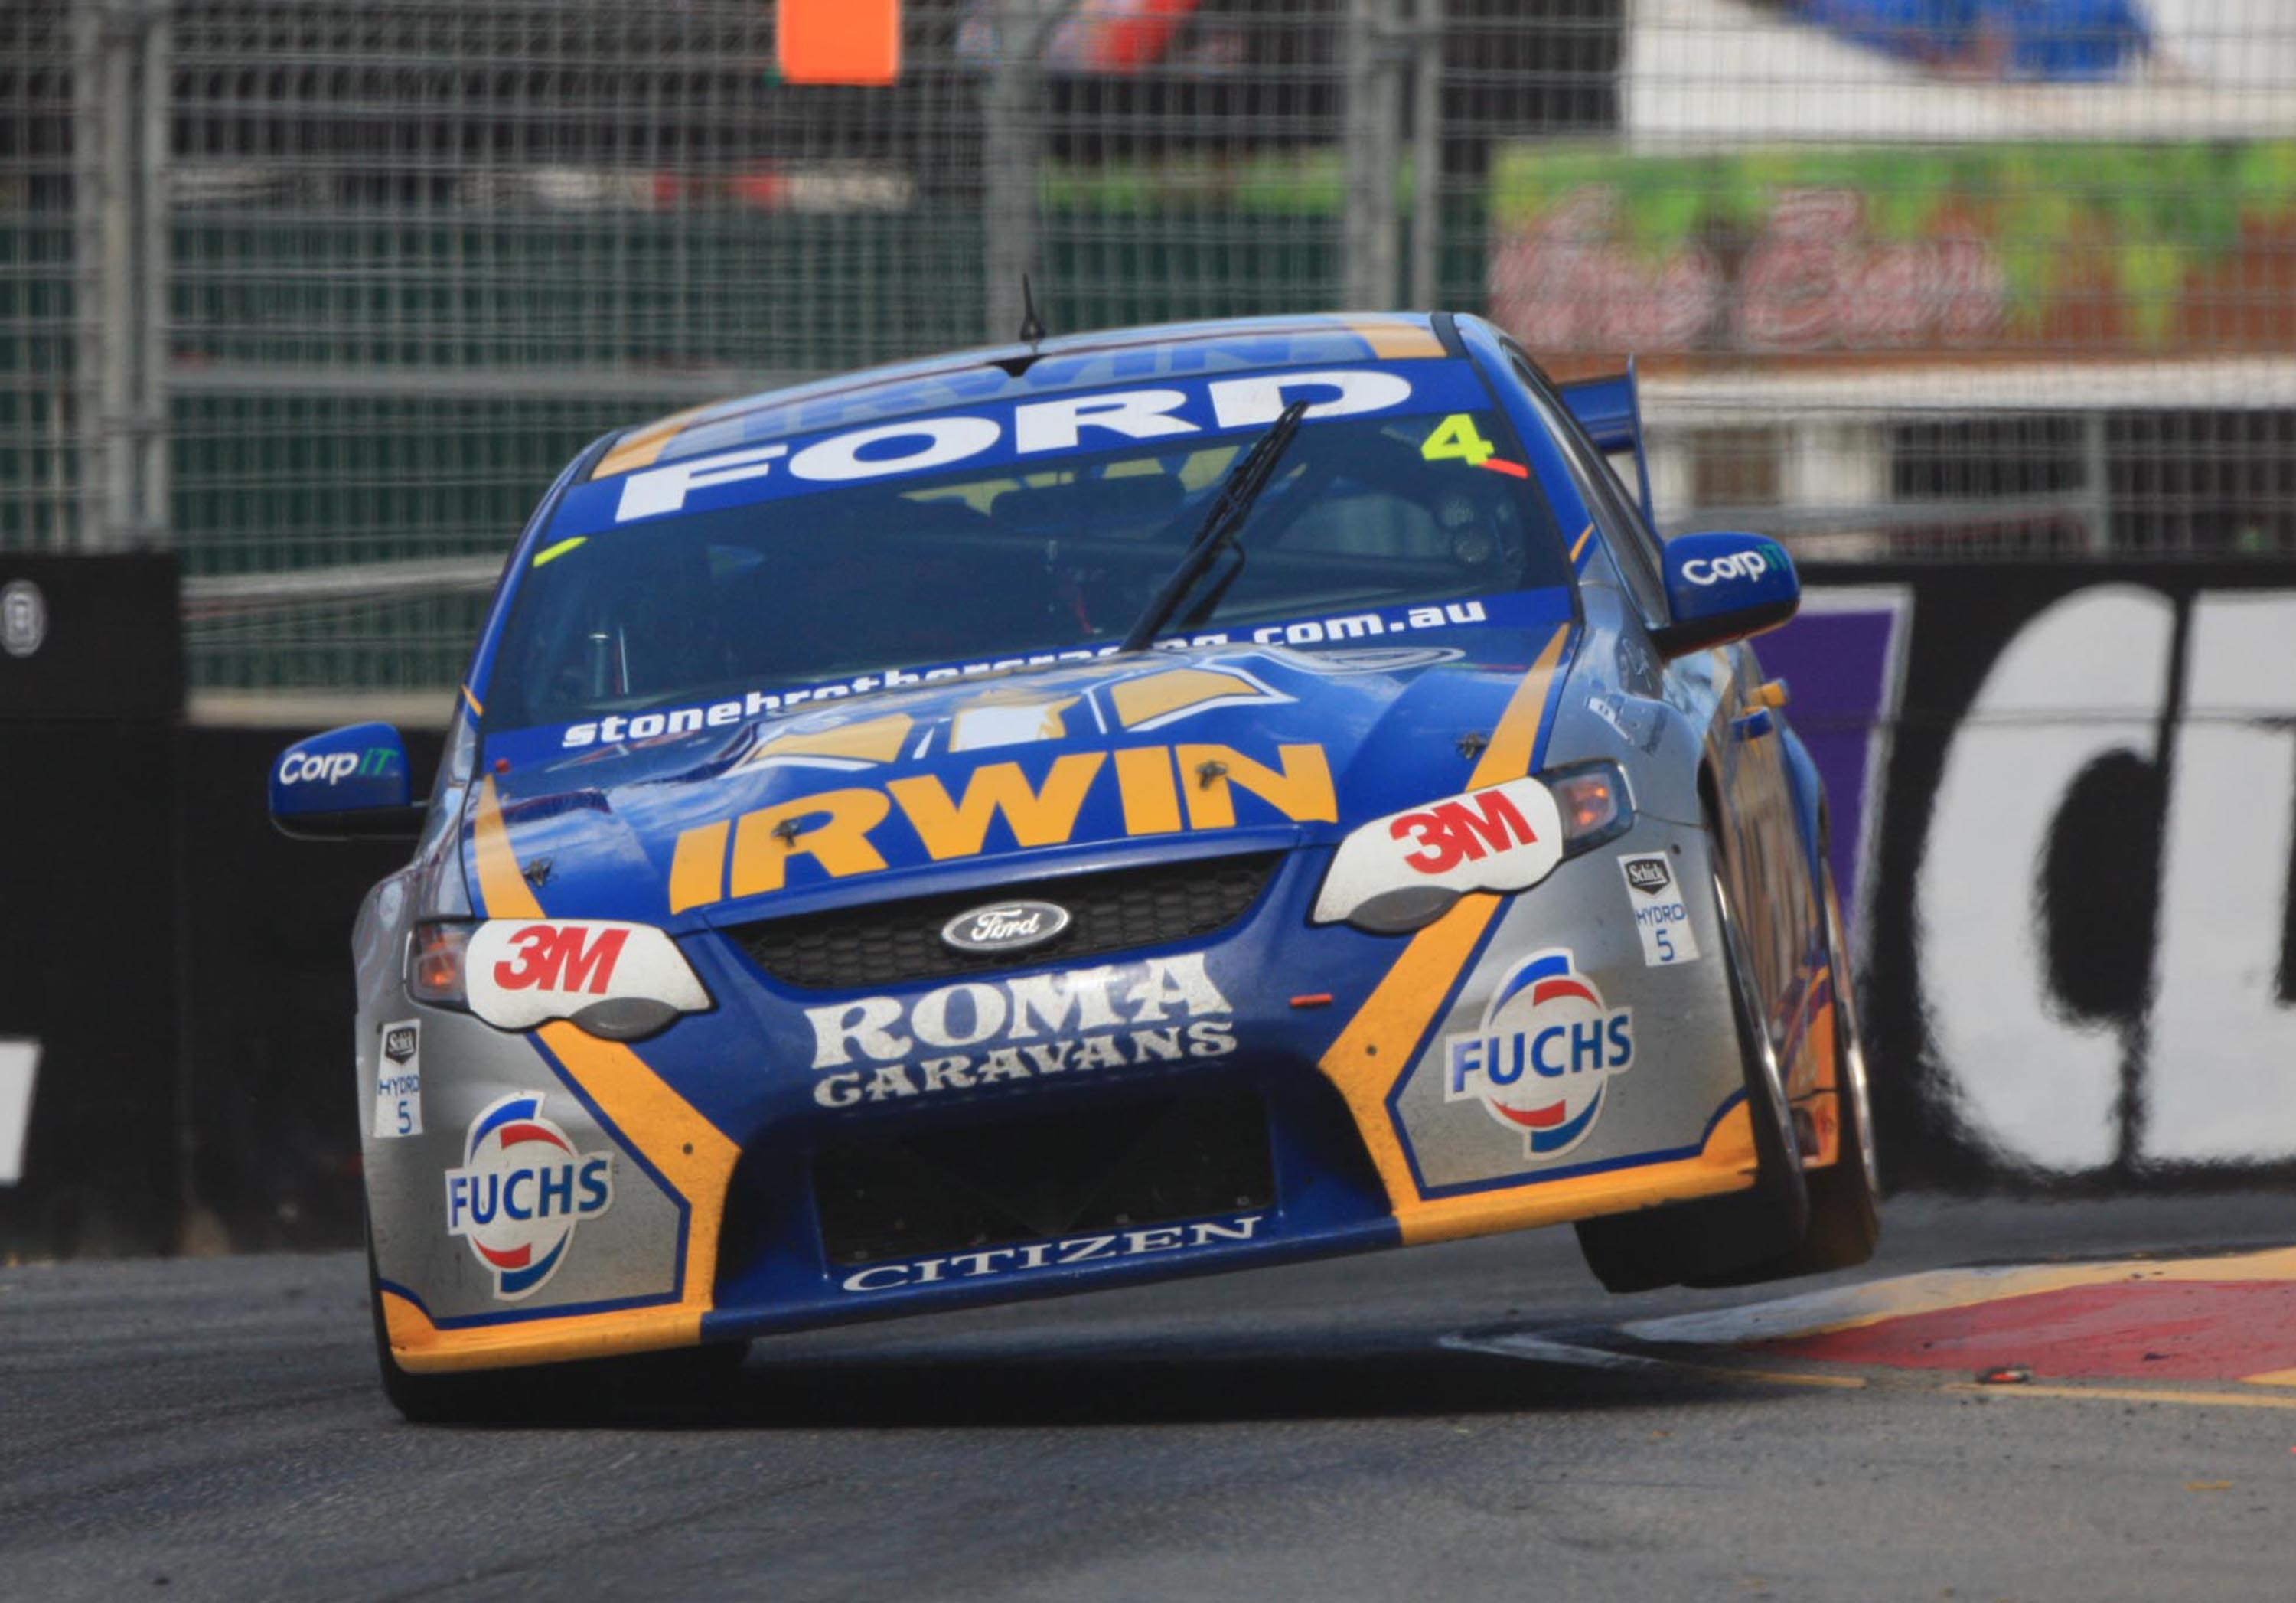 V8 Supercars Wallpapers HD Download 3000x2094